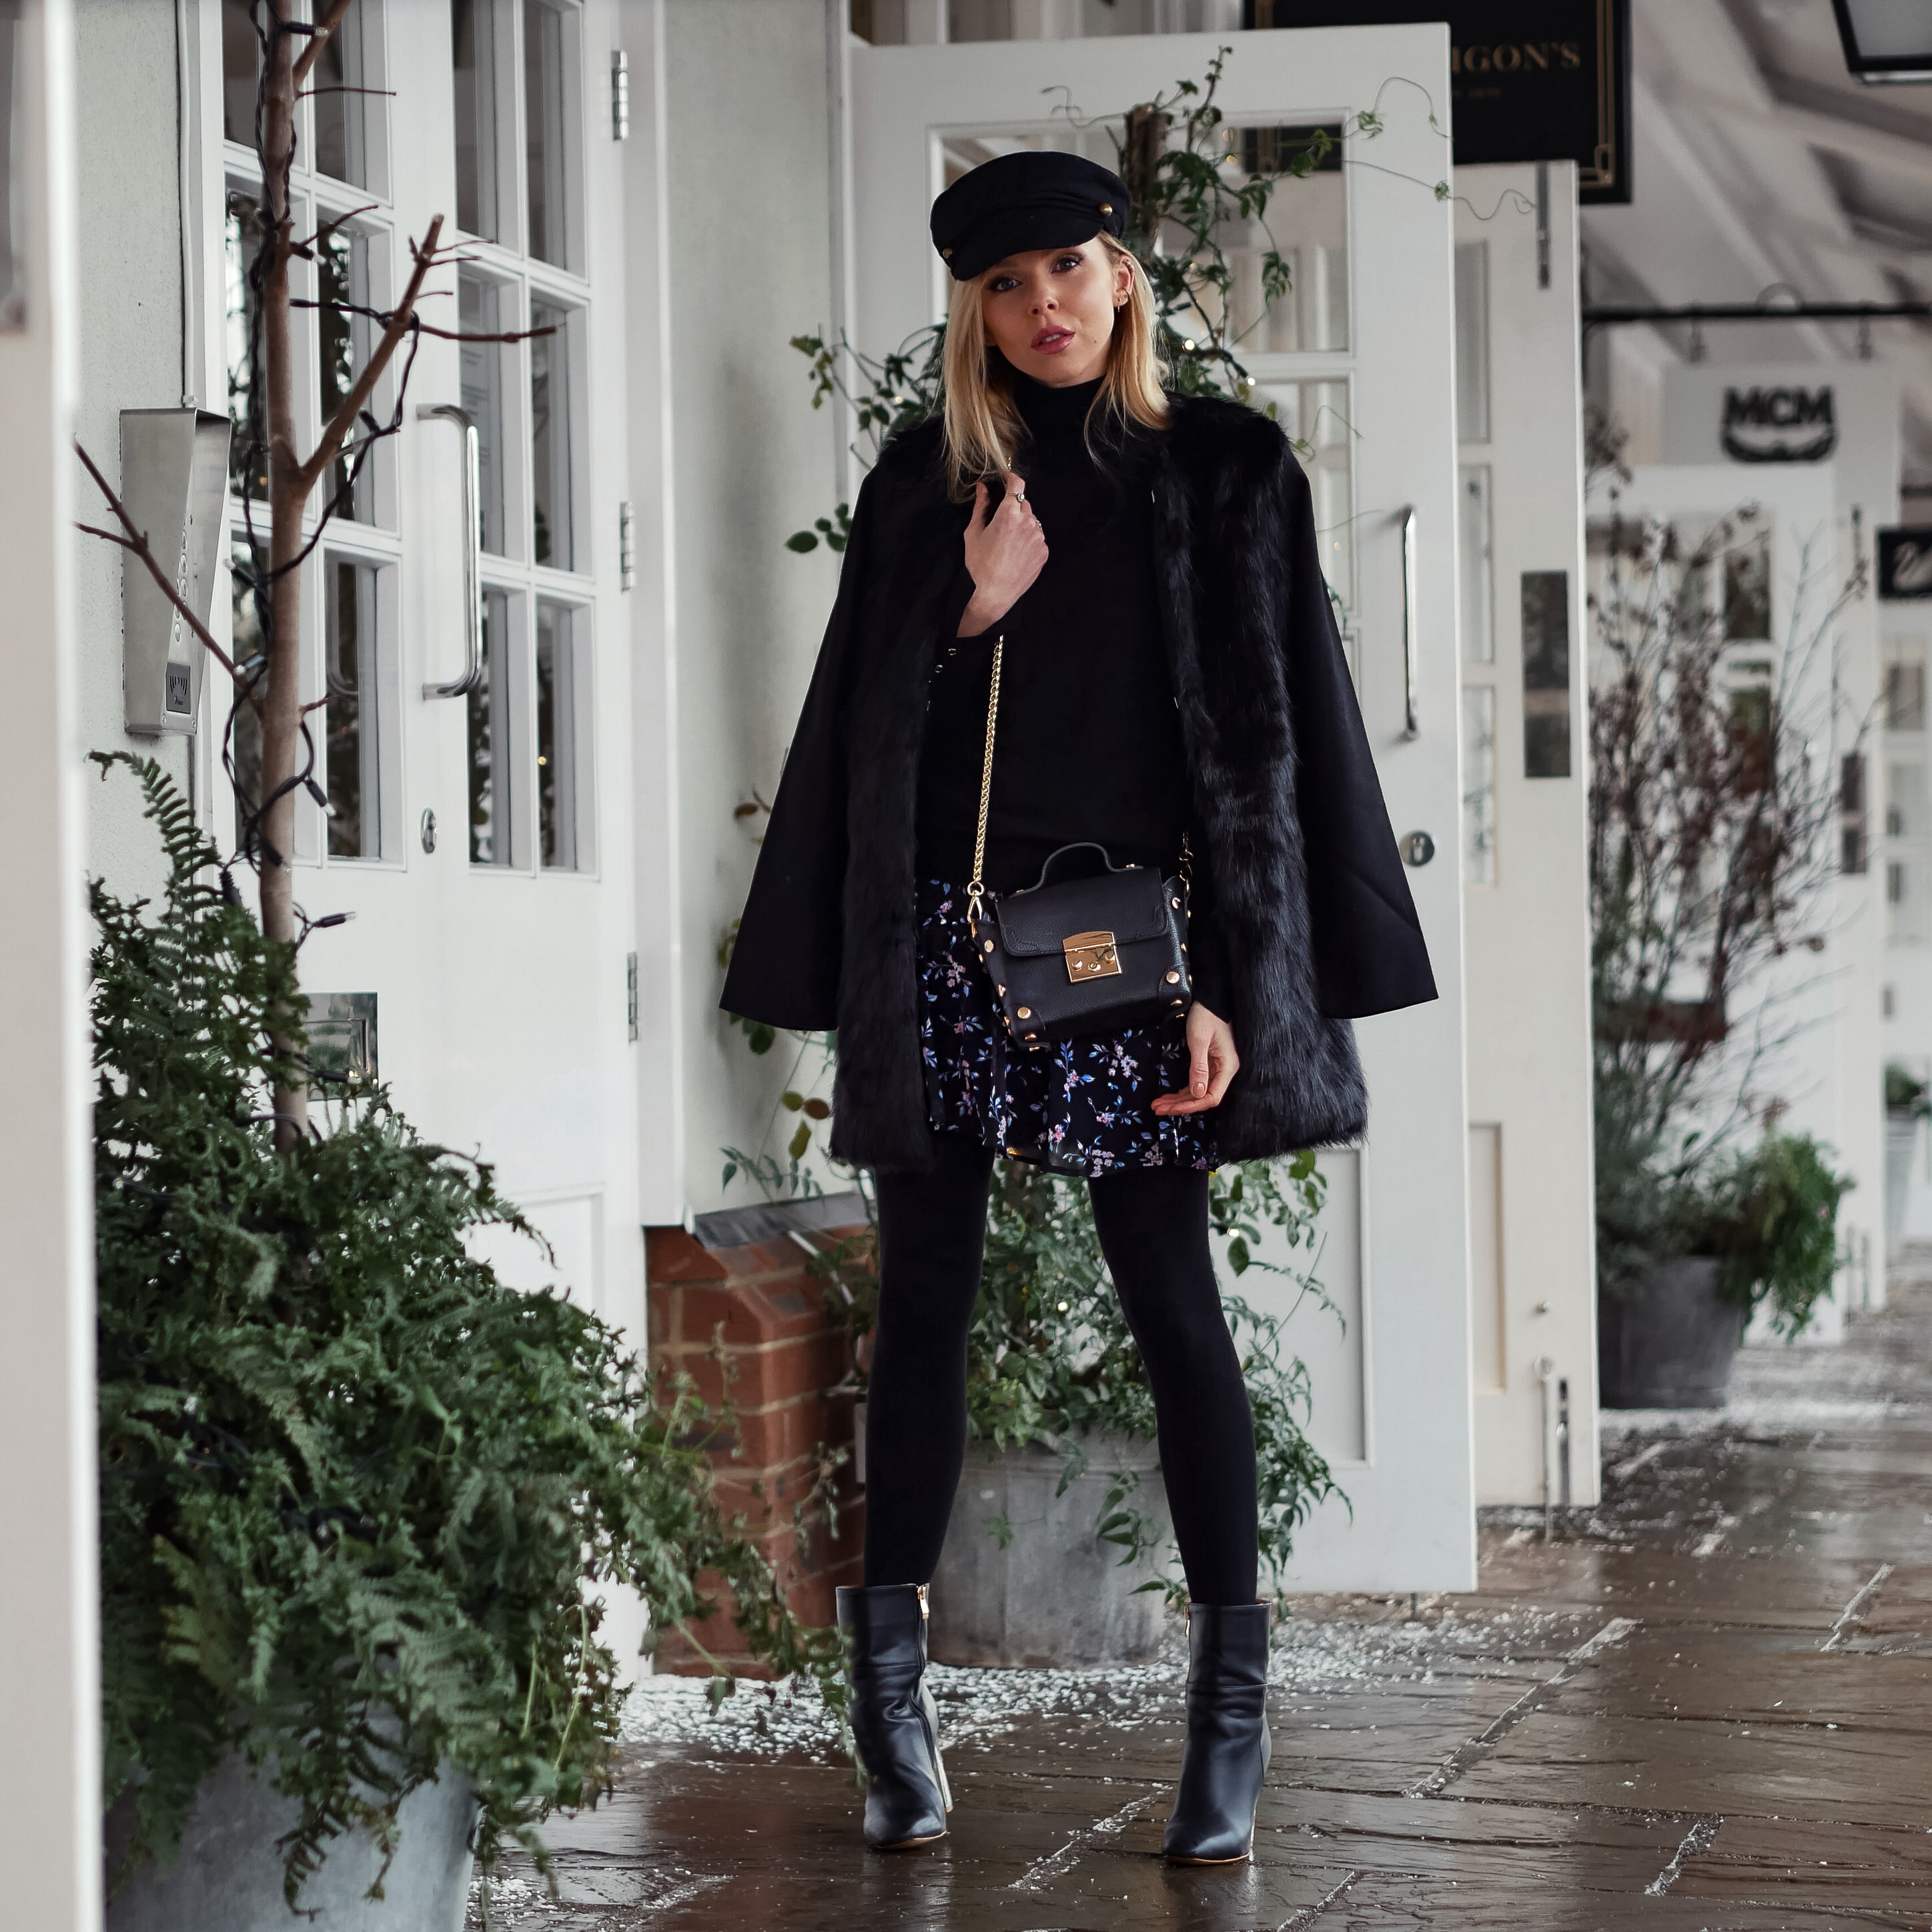 8 TIPS TO DRESS WARM THIS WINTER – Laura Blair